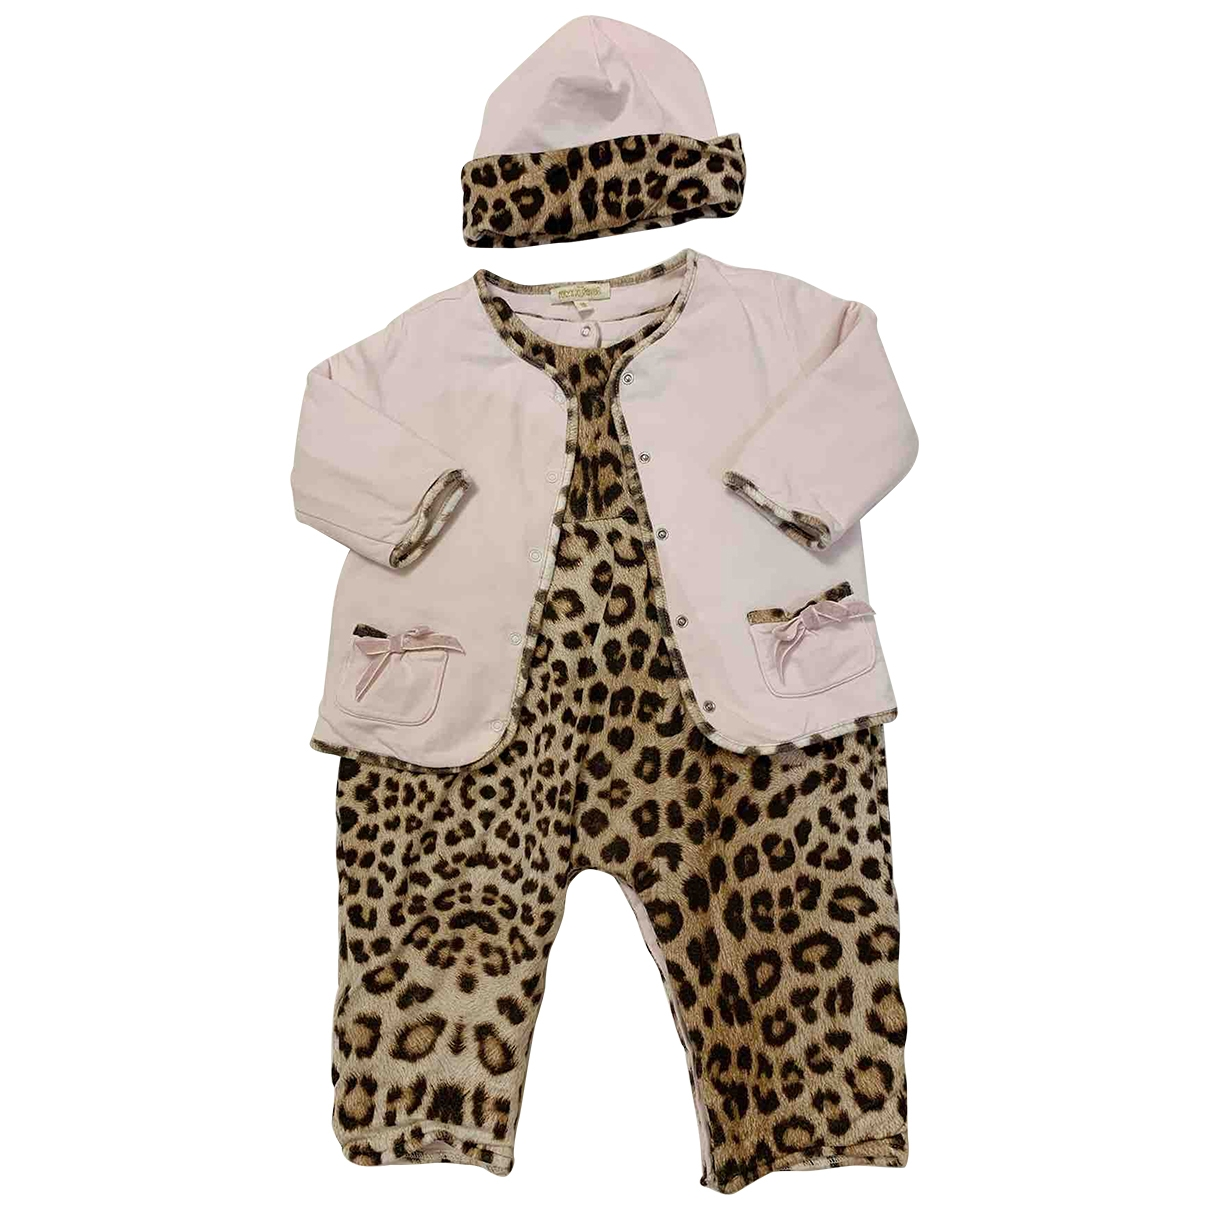 Roberto Cavalli \N Cotton Outfits for Kids 18 months - until 32 inches UK